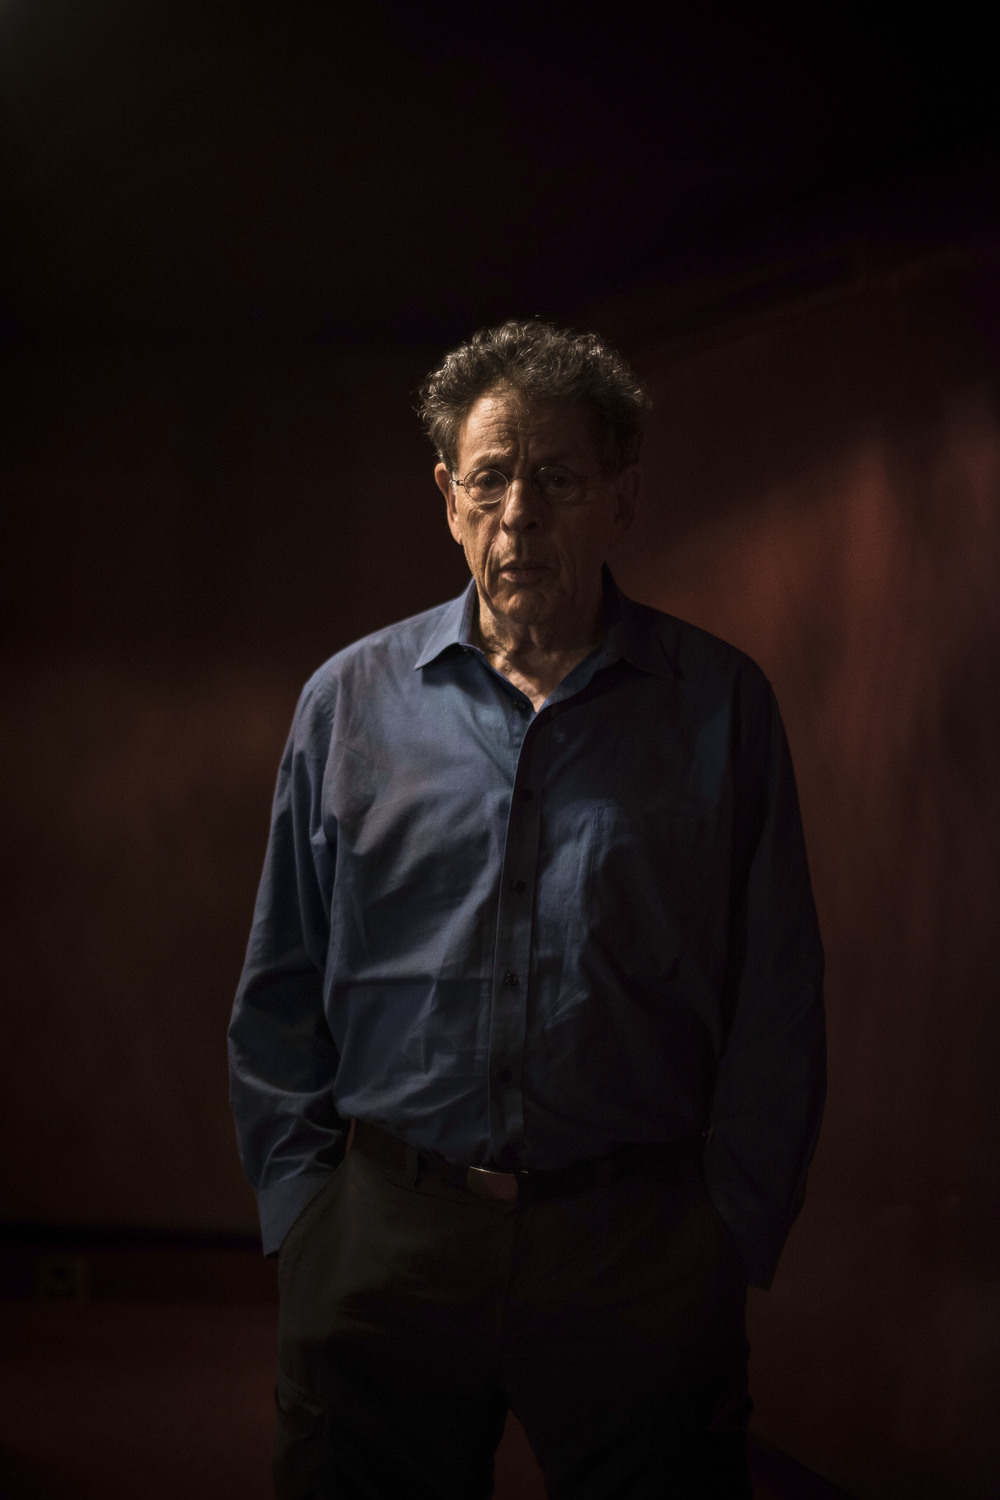 Philip Glass, Composer, Washington, D.C.